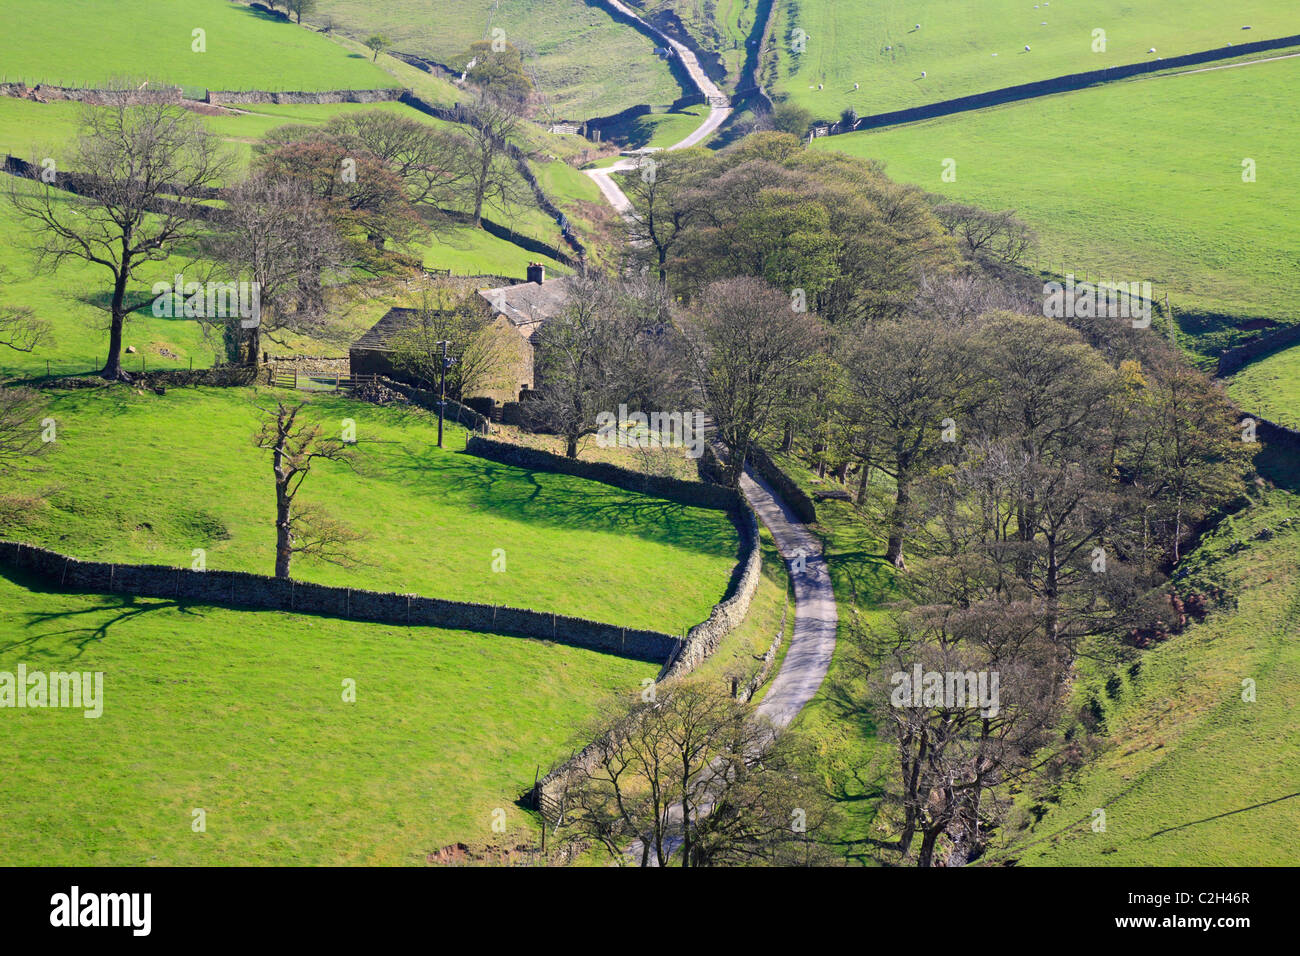 Coldwell Clough Farm below Kinder Scout, Hayfield, Derbyshire, Peak District National Park, England, UK. - Stock Image